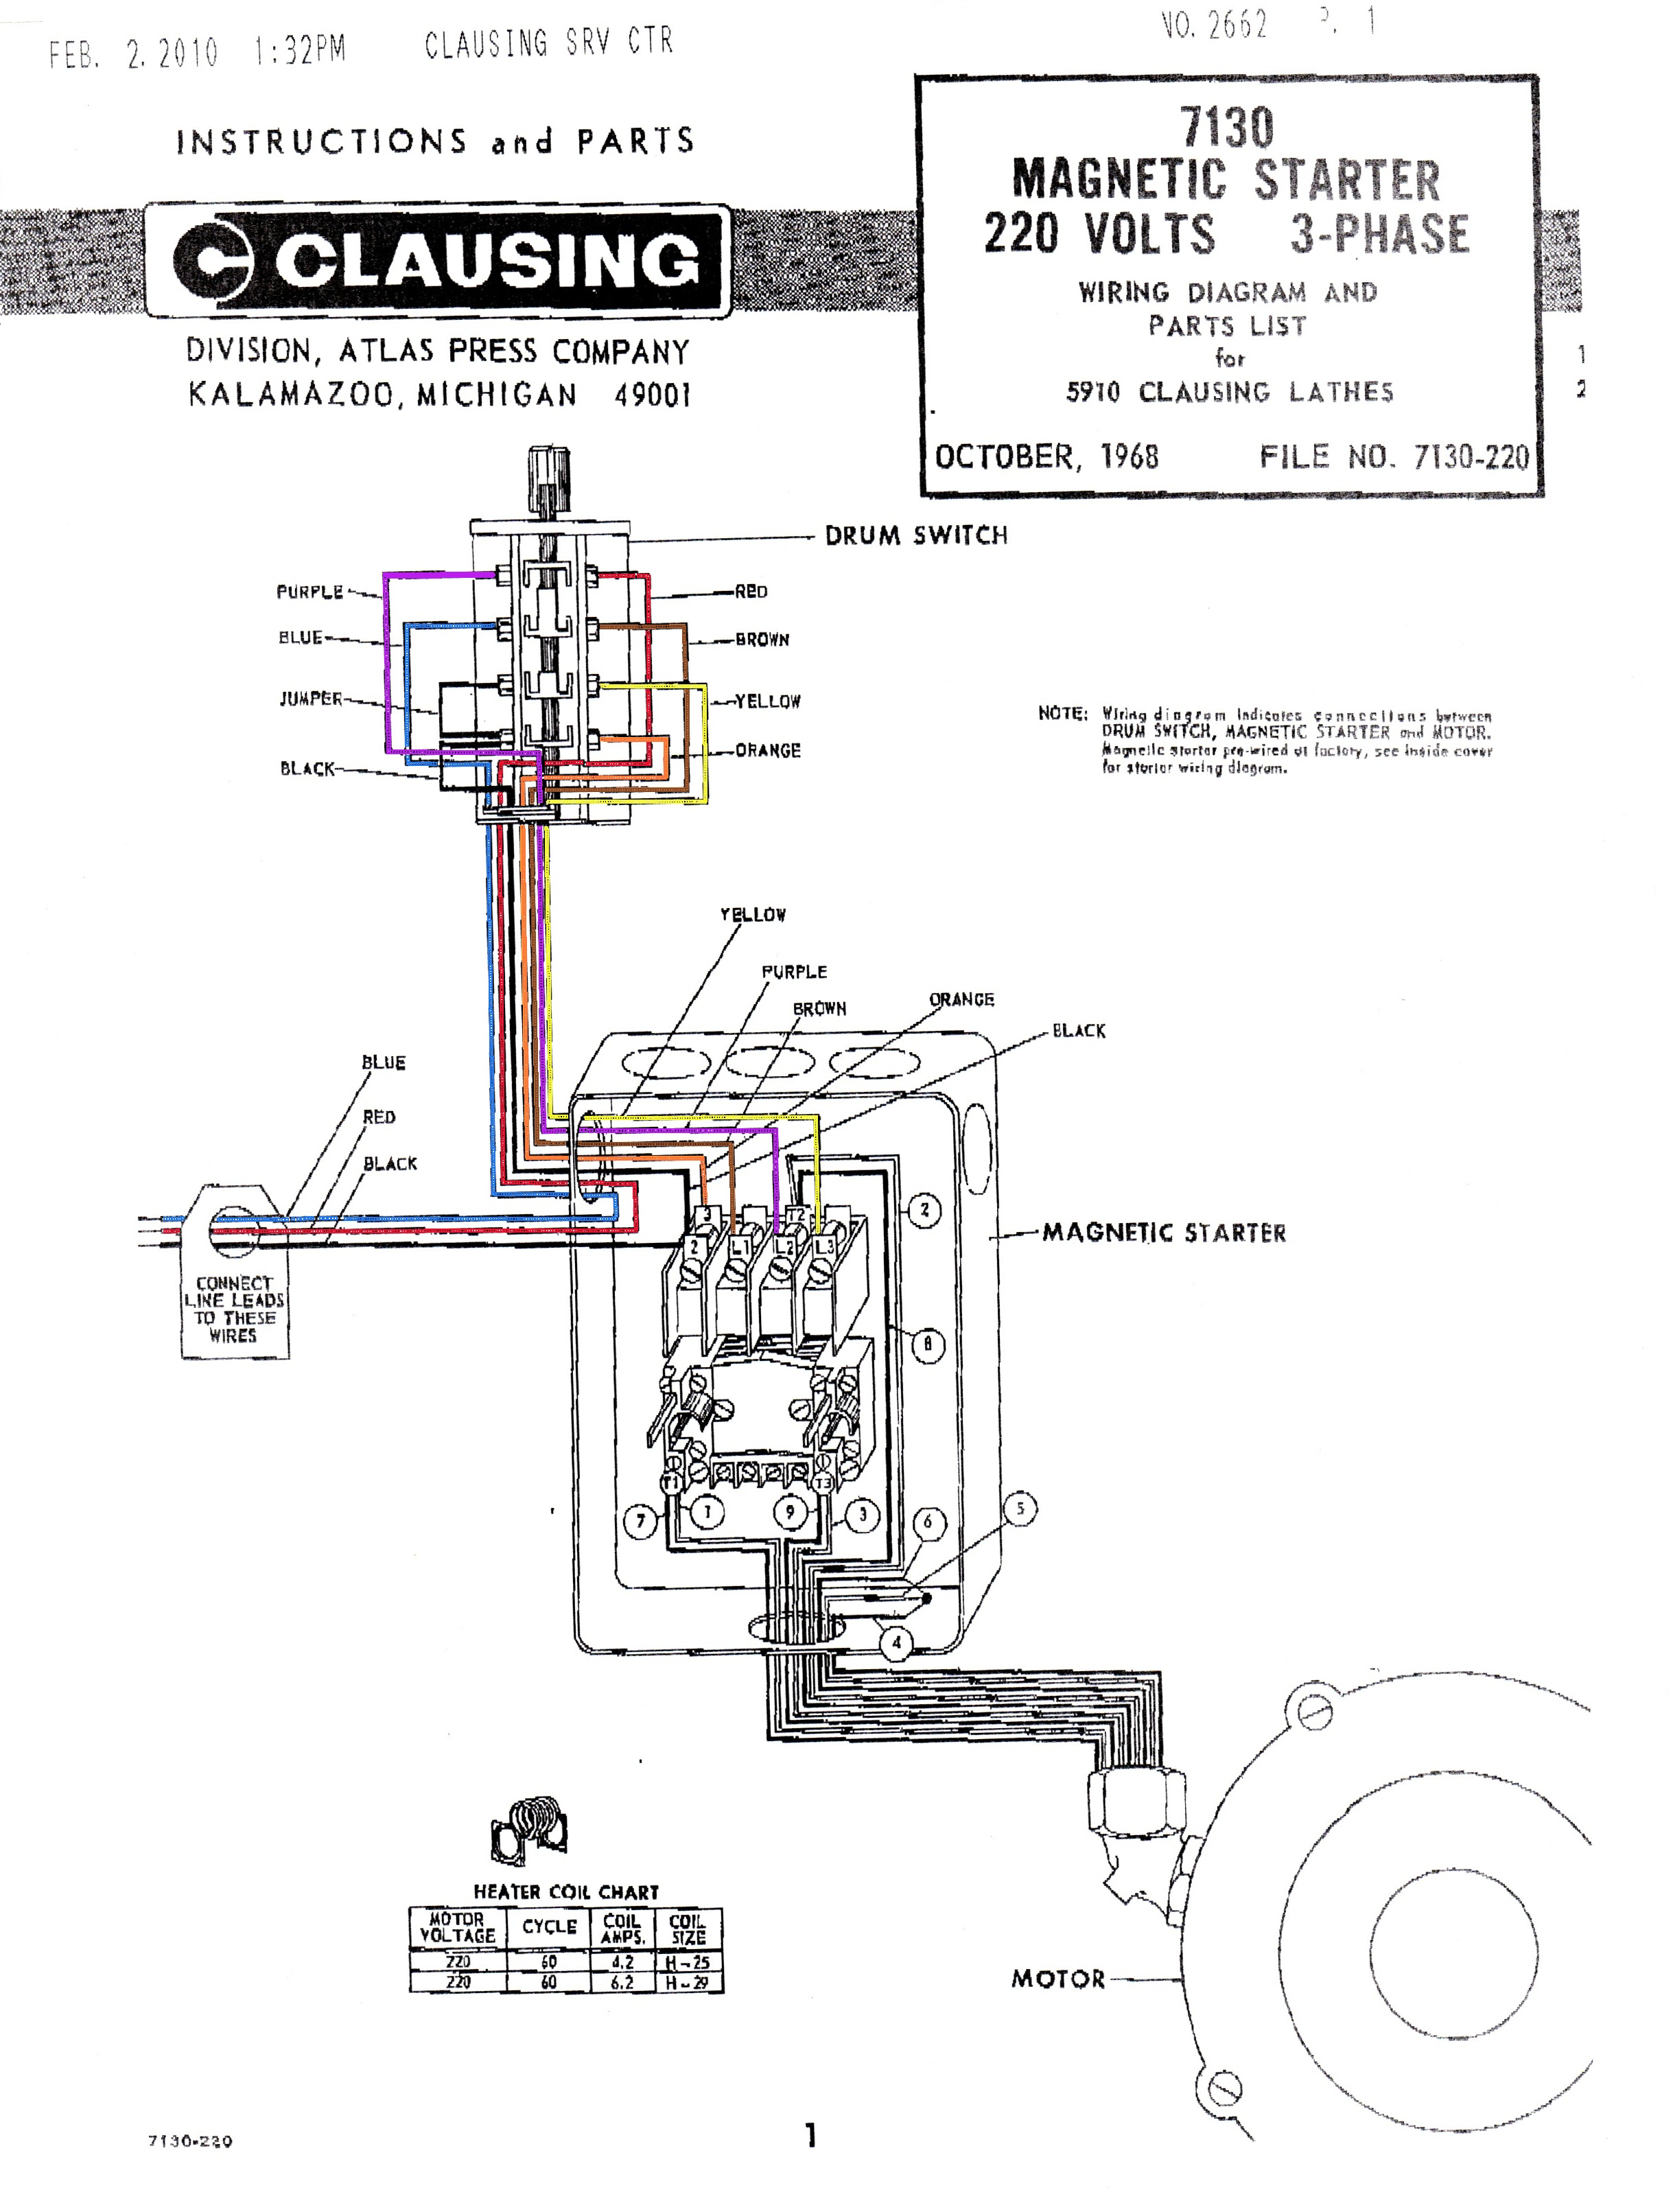 7130 Magnetic Starter Wiring Diagram Color starter wiring diagrams mag wiring diagrams instruction starter wiring diagram at n-0.co